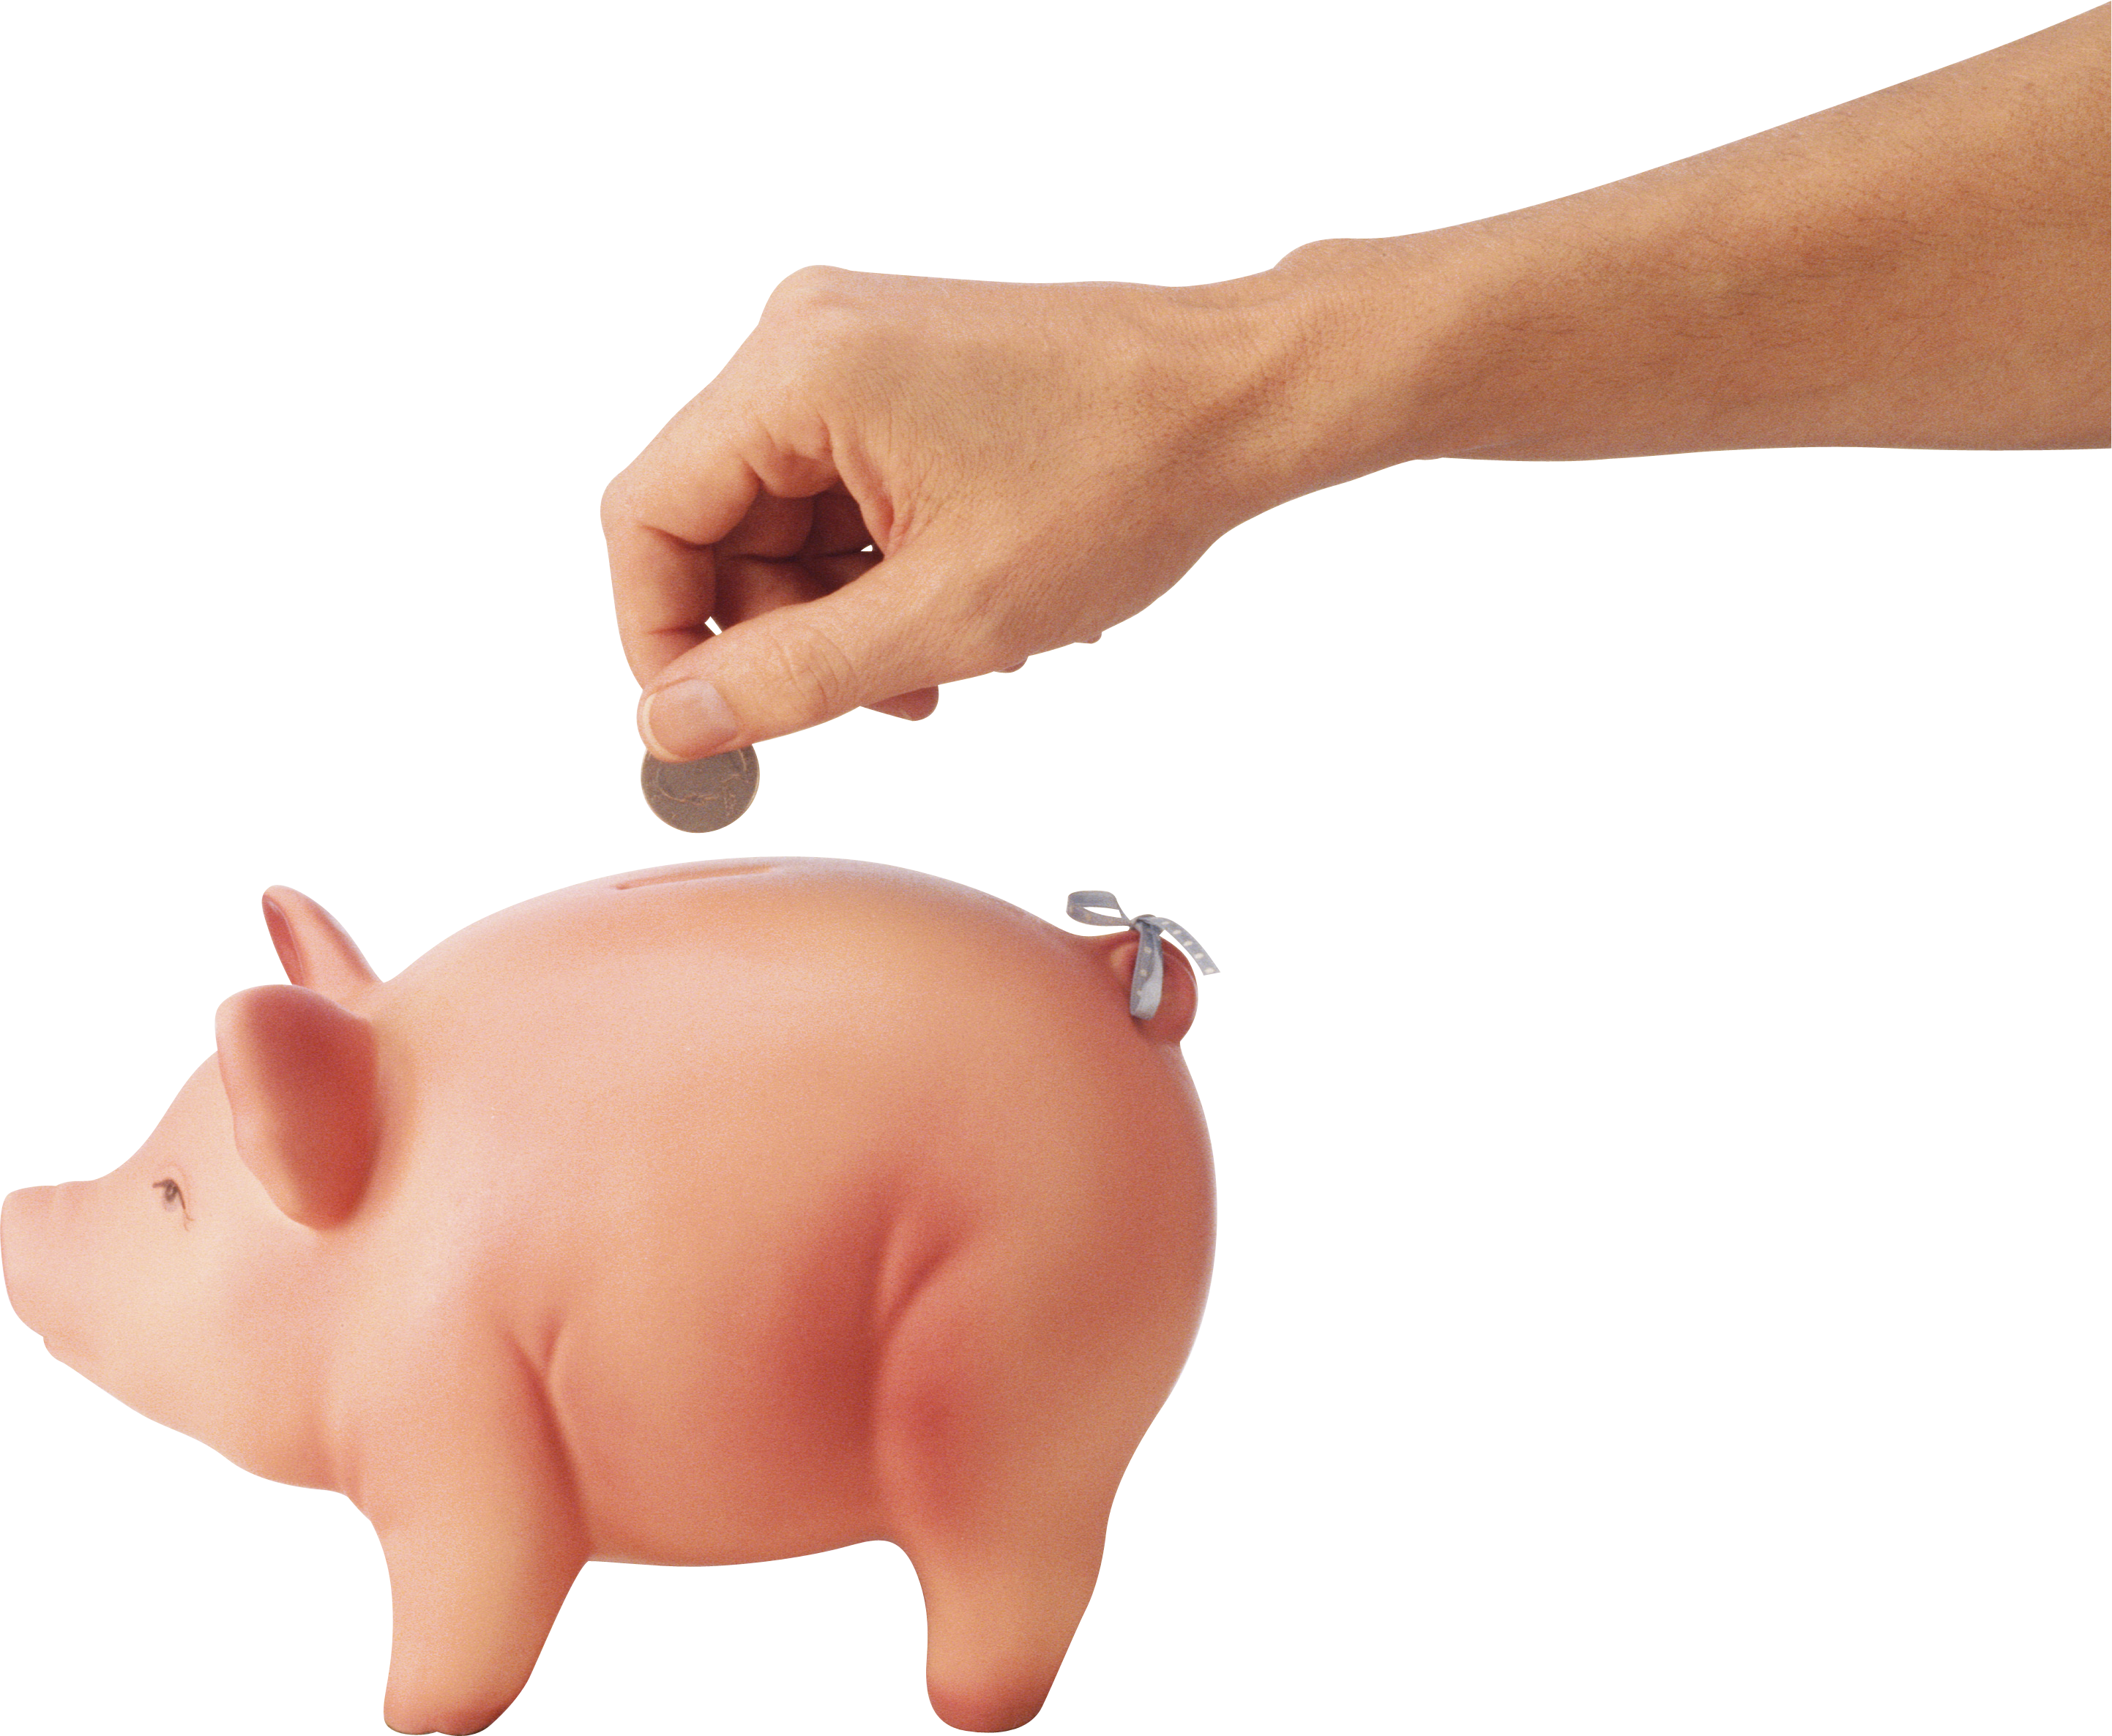 Hand with money clipart png library library Hand Putting Money Into Saving Pig | Isolated Stock Photo by noBACKS.com png library library